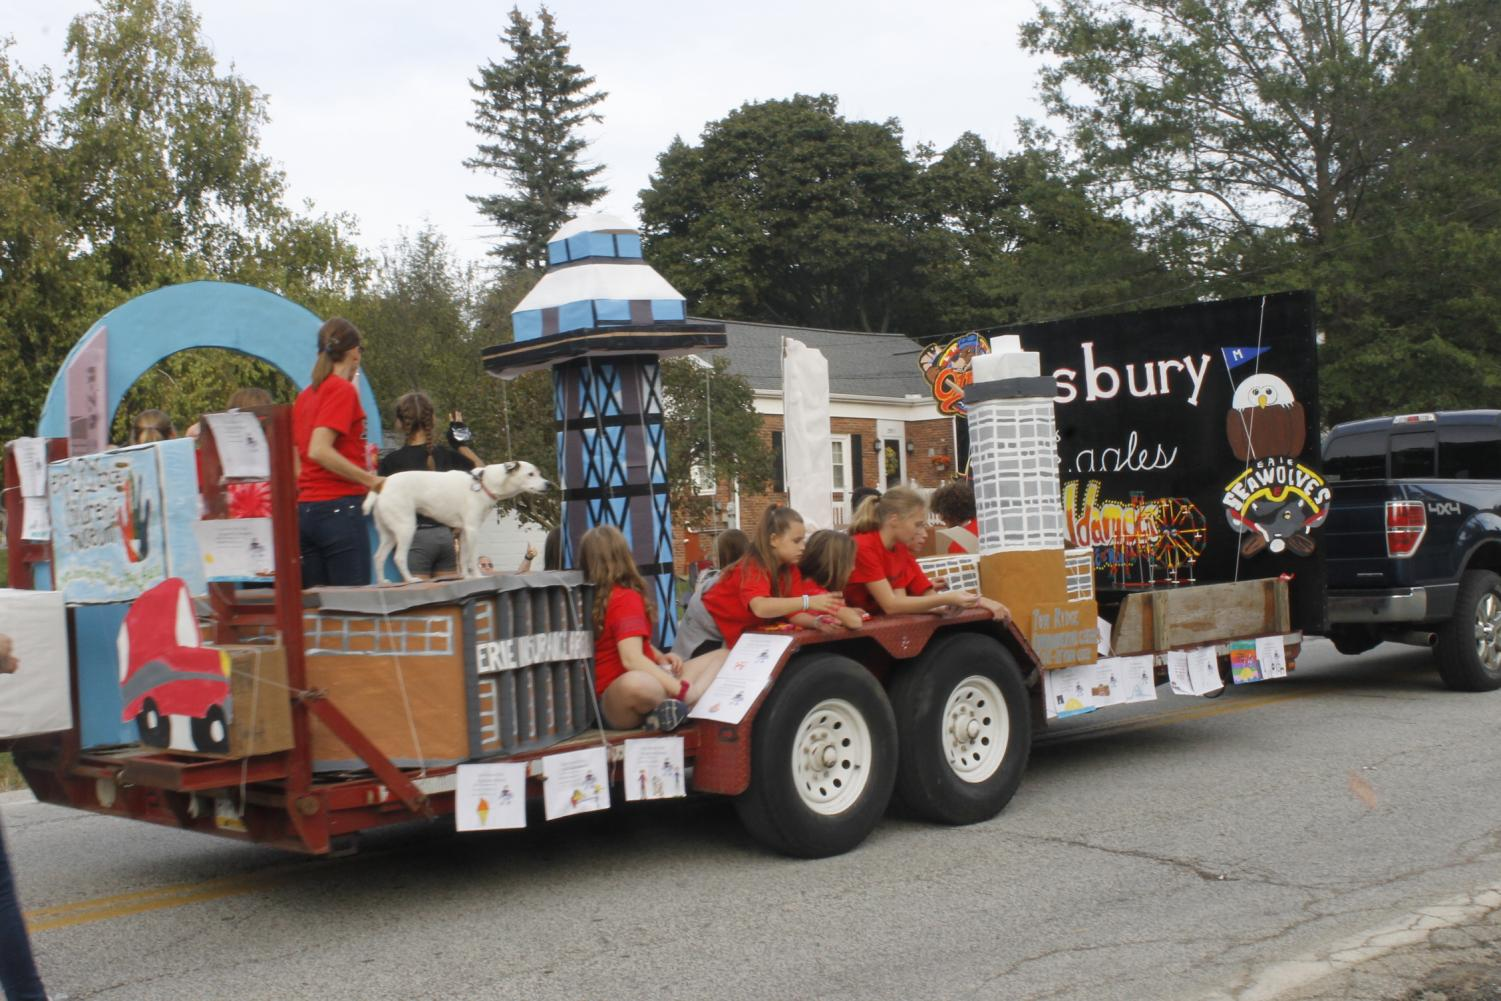 The+winner+of+the+float+contest+at+the+elementary+level%3A+Asbury+Elementary.